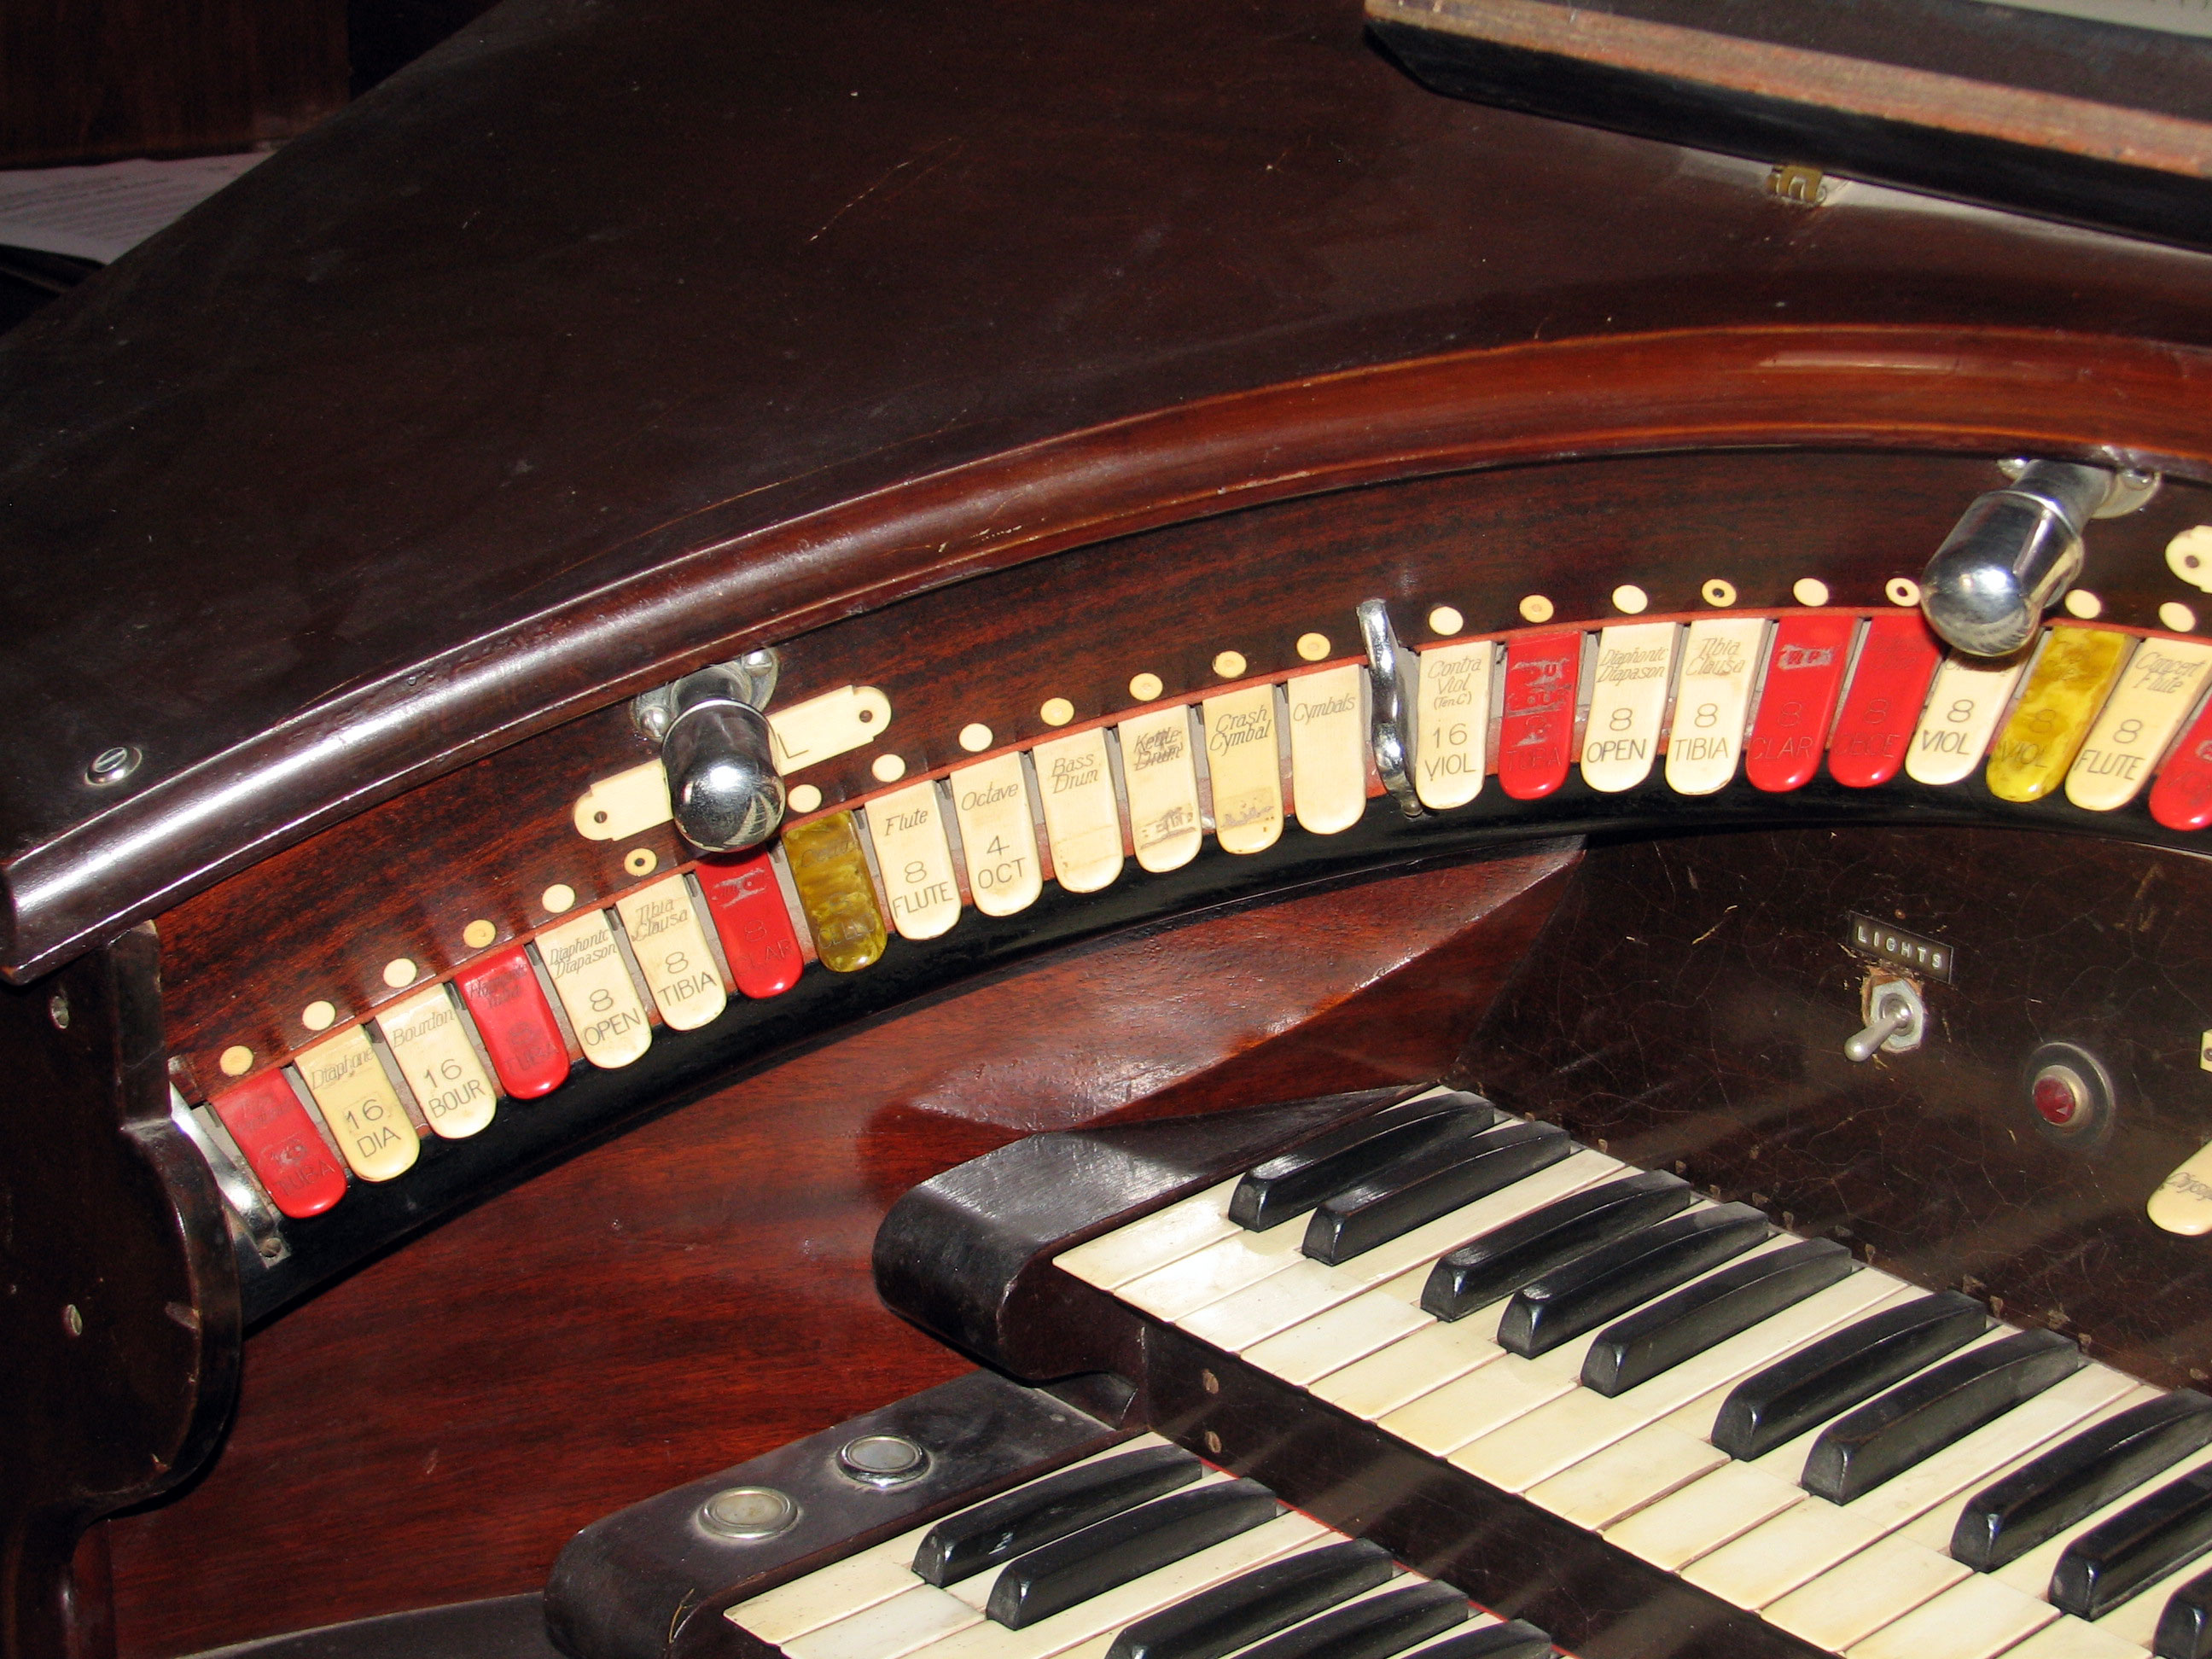 Click here to download a 2592 x 1944 JPG image showing the left bolster of the 2/9 Mighty WurliTzer Style F console.